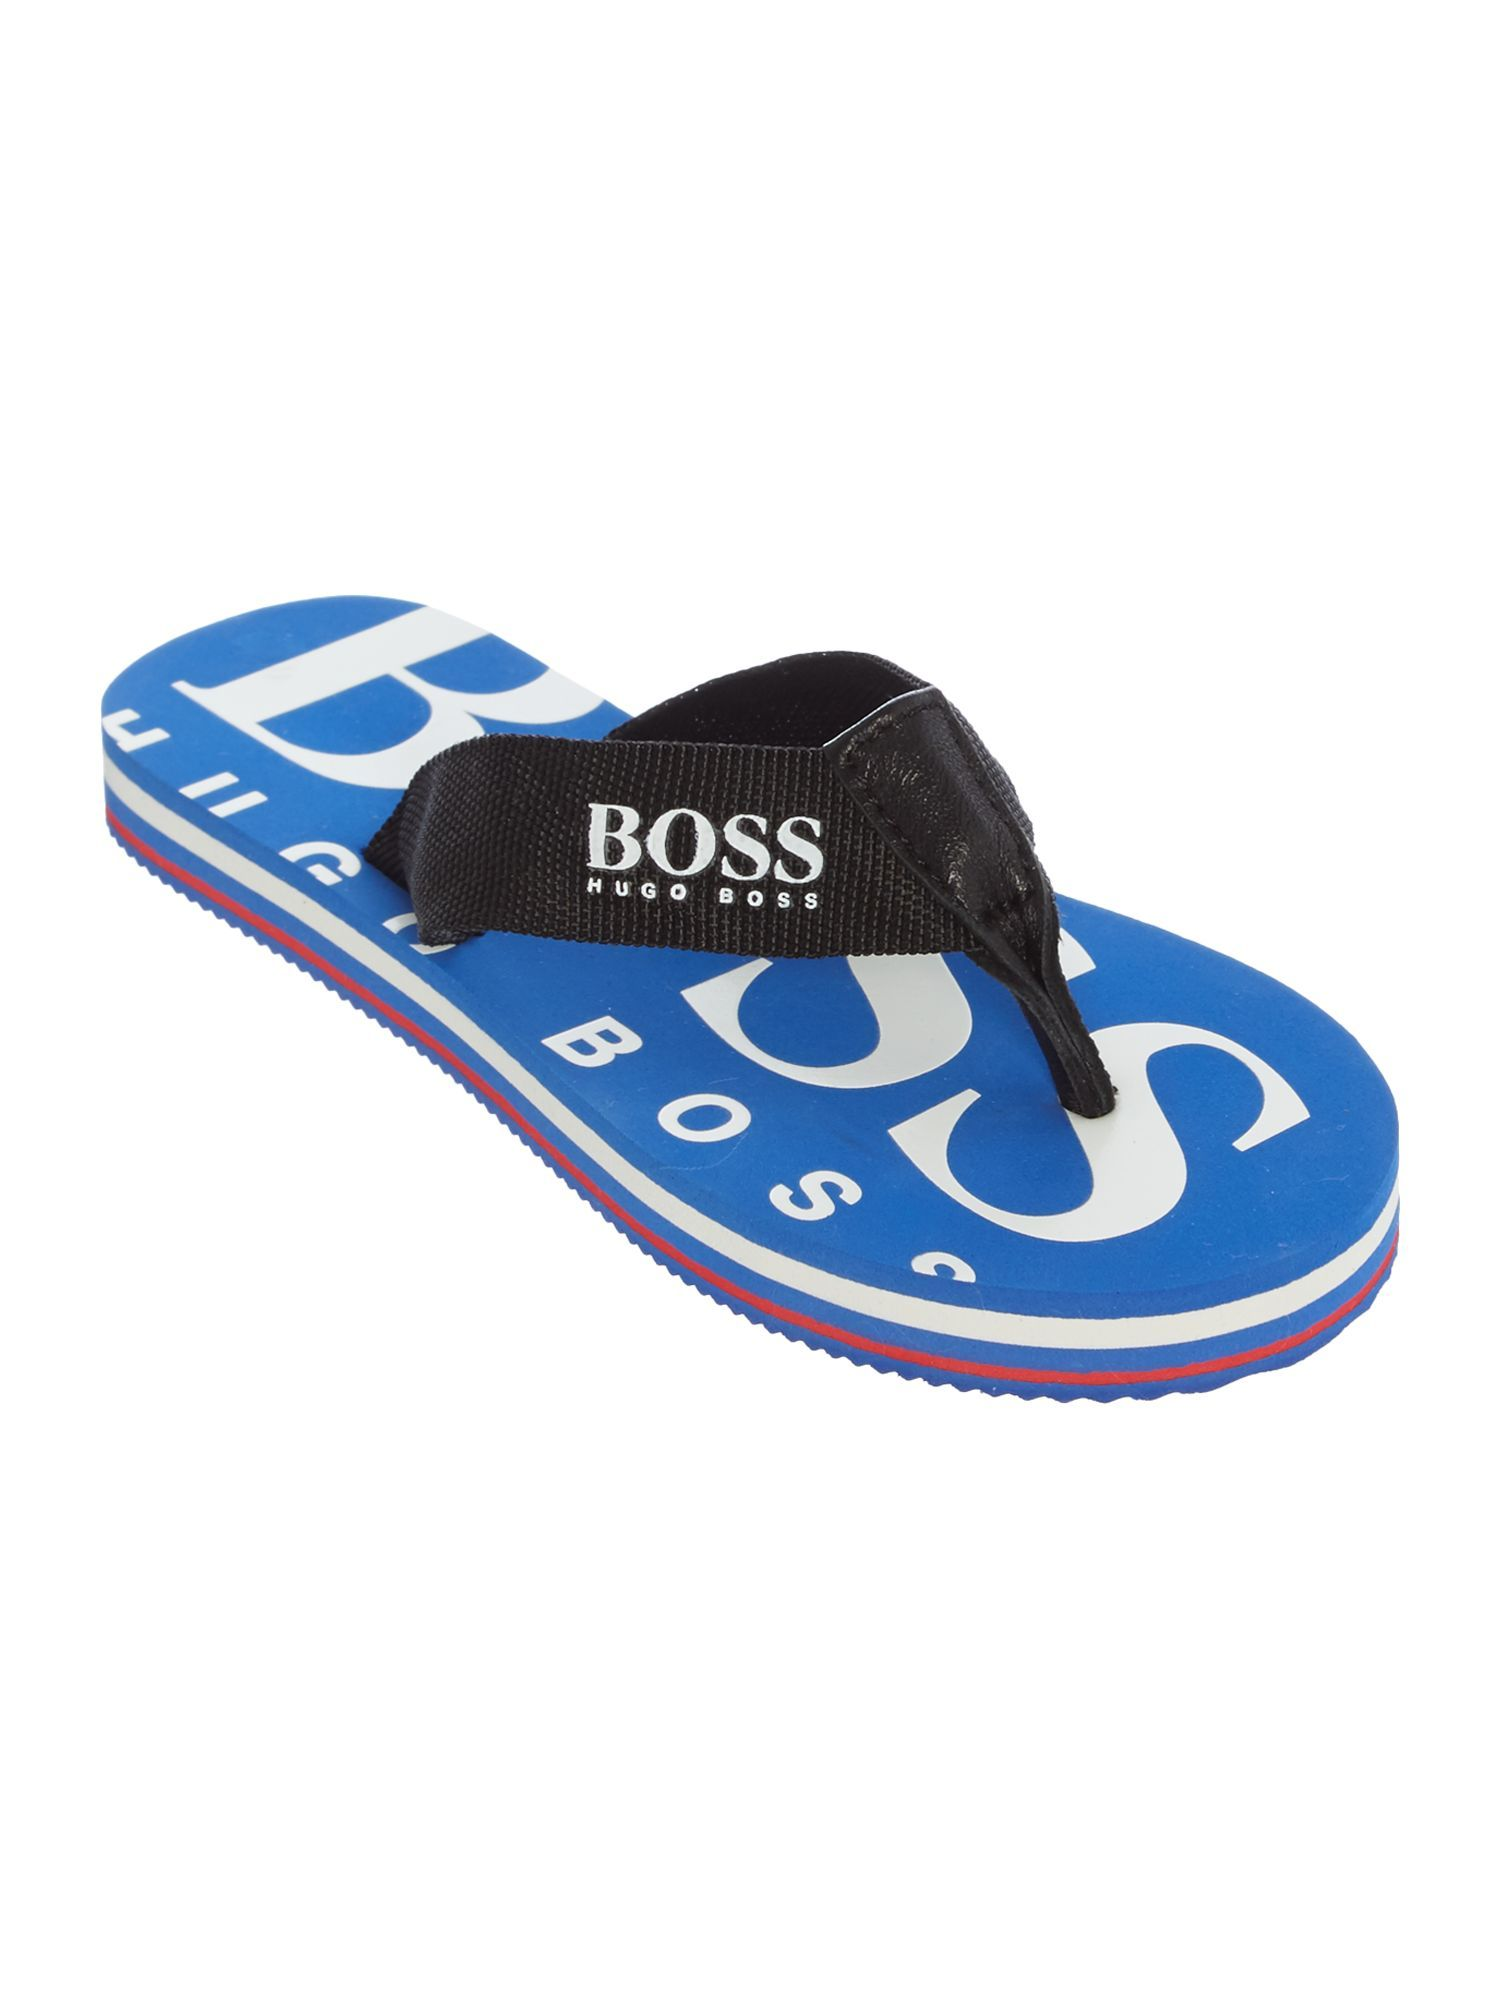 Boss: A lovely pair of flip flops with cow leather sold in a pouch bag., Sandals & Flip FlopsMachine wash coldBoy Get the Hugo Boss Boys Flip Flops,